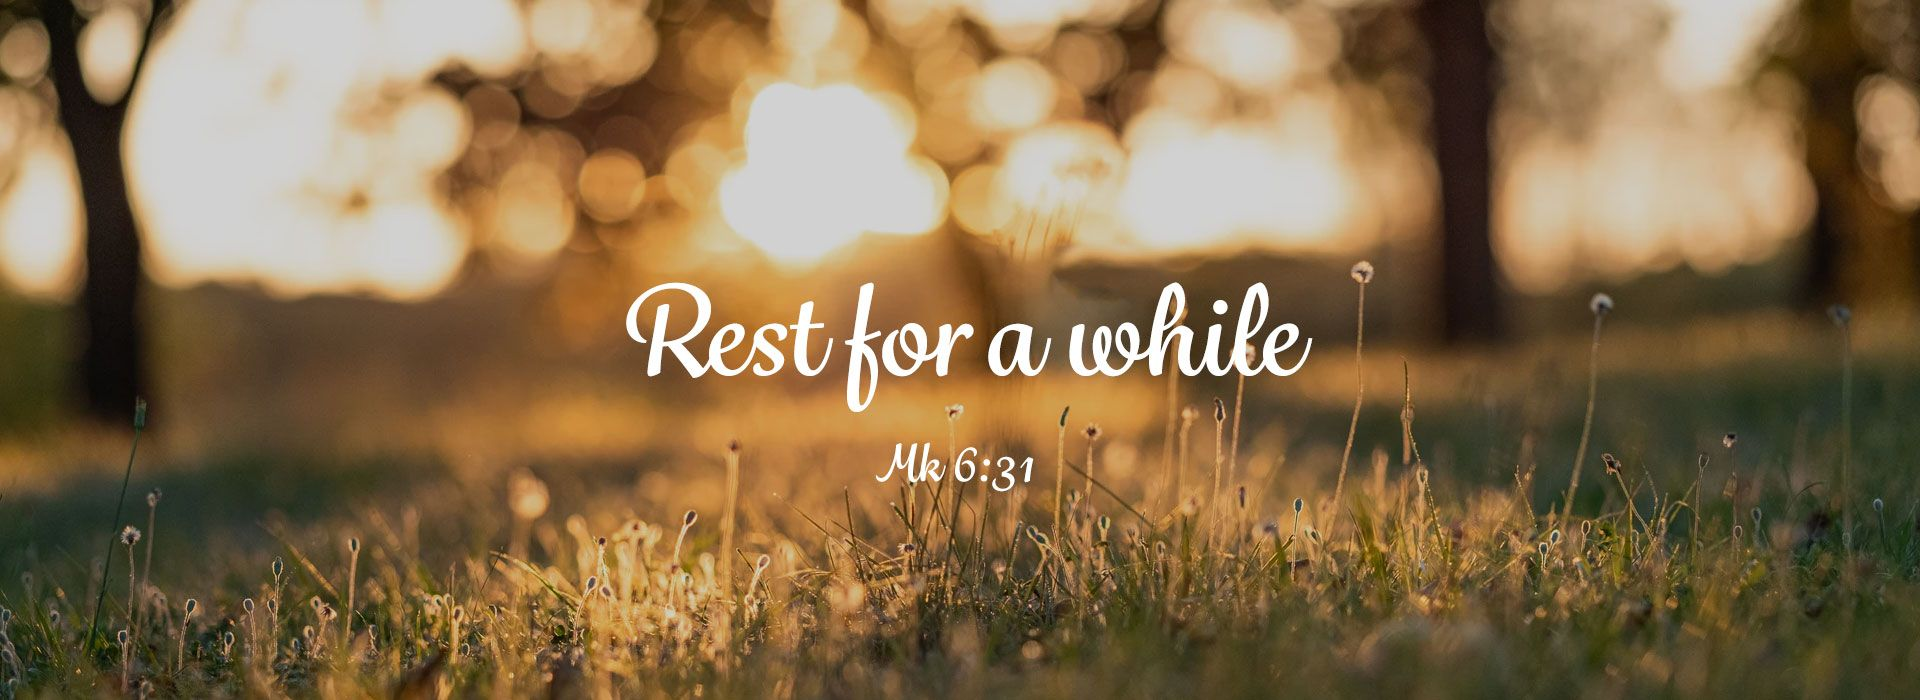 Rest for a while